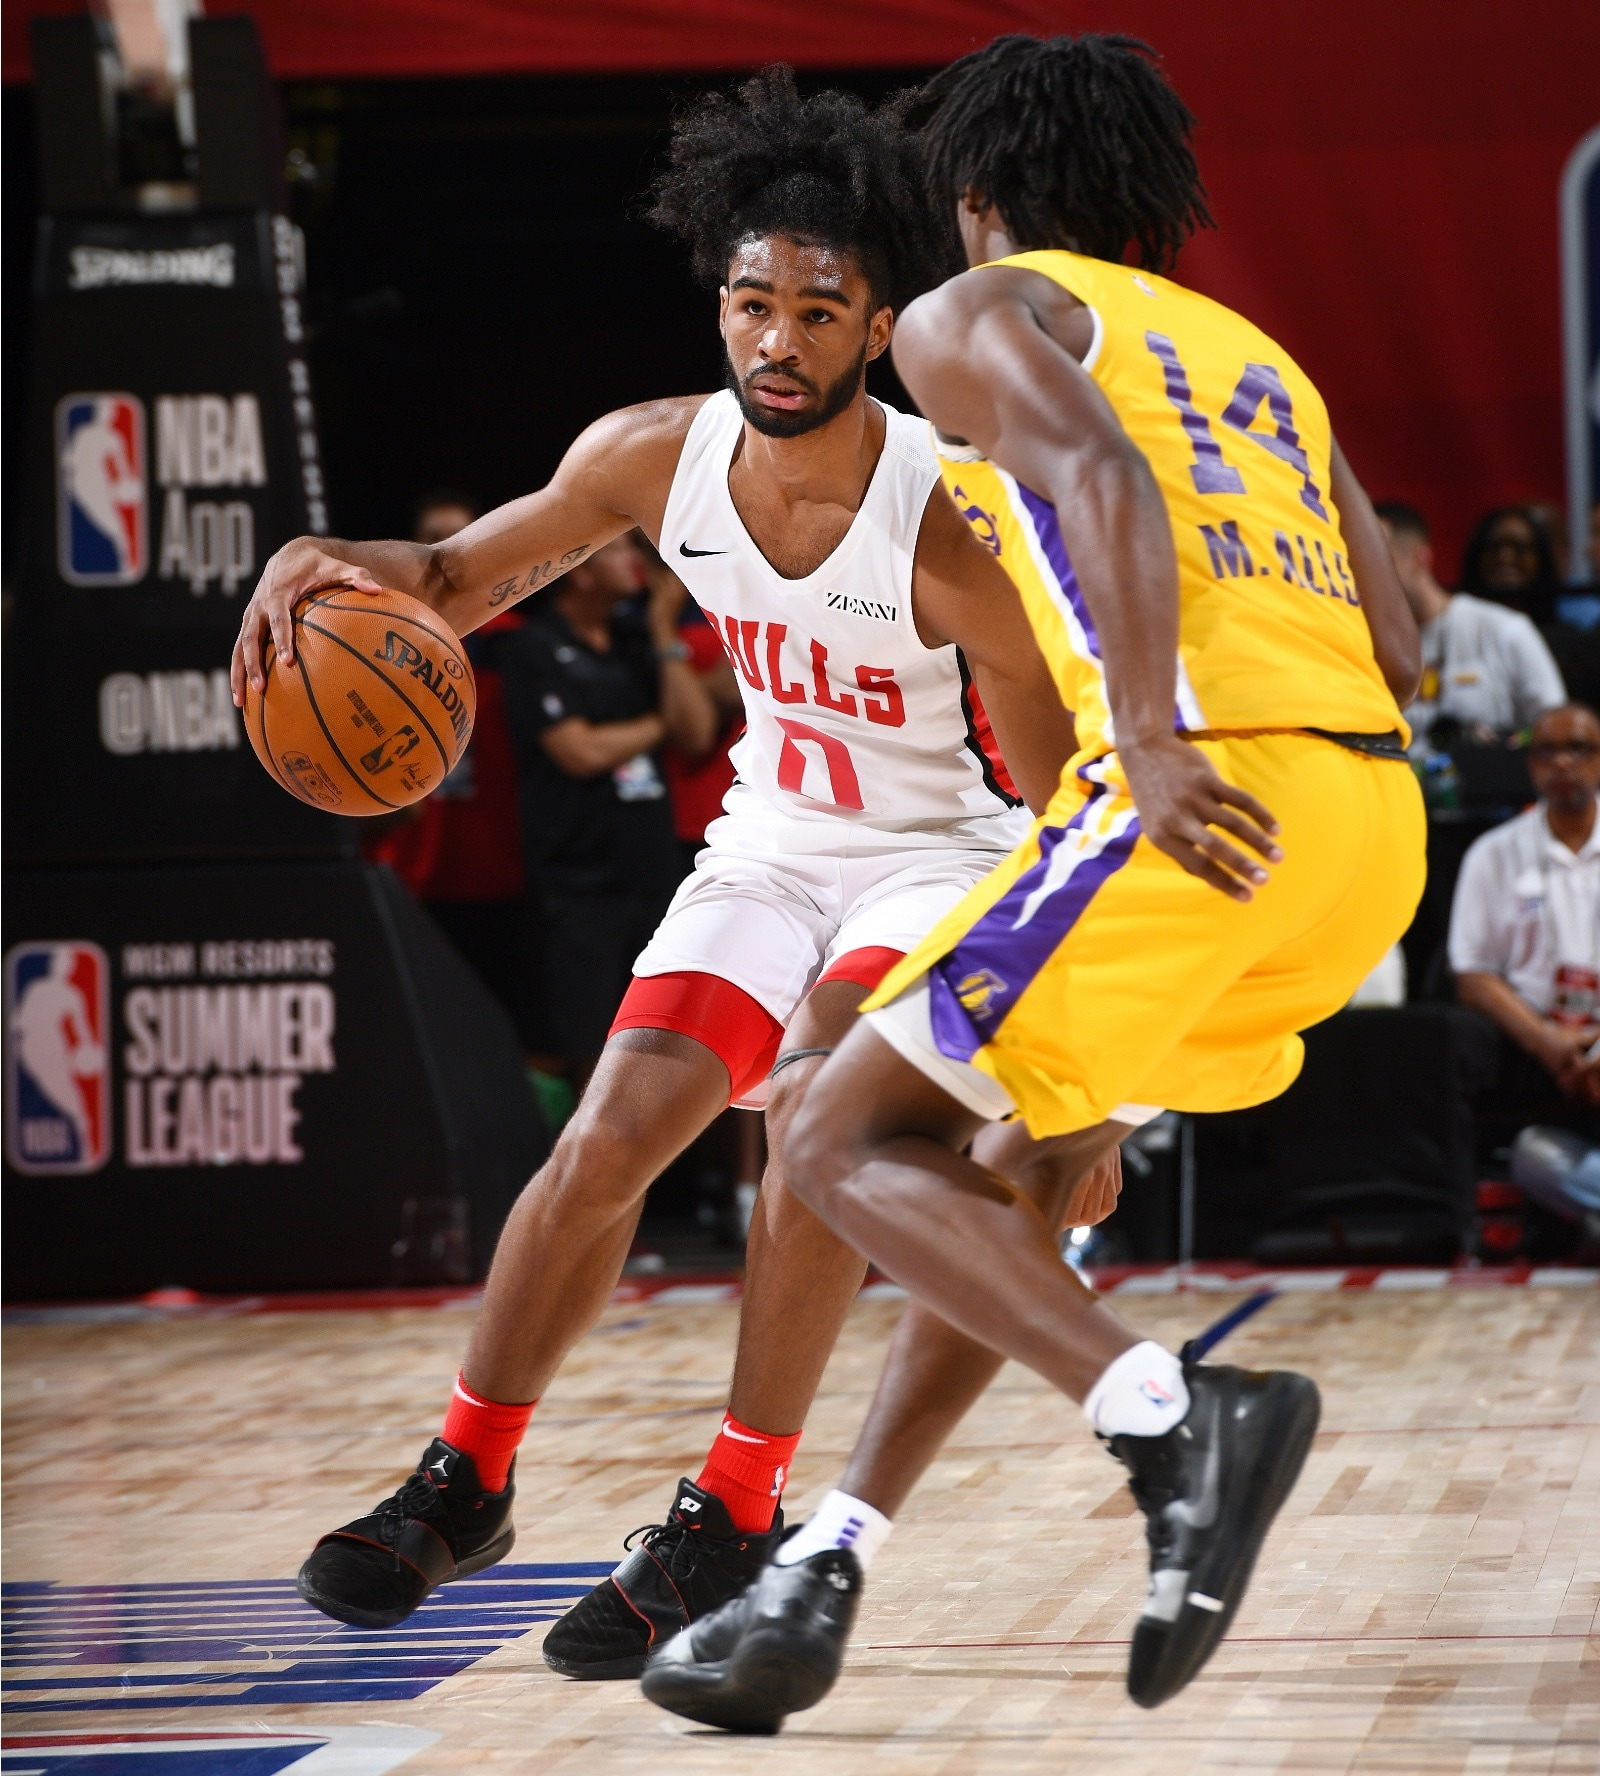 Coby White #0 of the Chicago Bulls dribbles the ball during the game against the Los Angeles Lakers during Day 1 of the 2019 Las Vegas Summer League on July 5, 2019 at the Thomas & Mack Center in Las Vegas, Nevada.